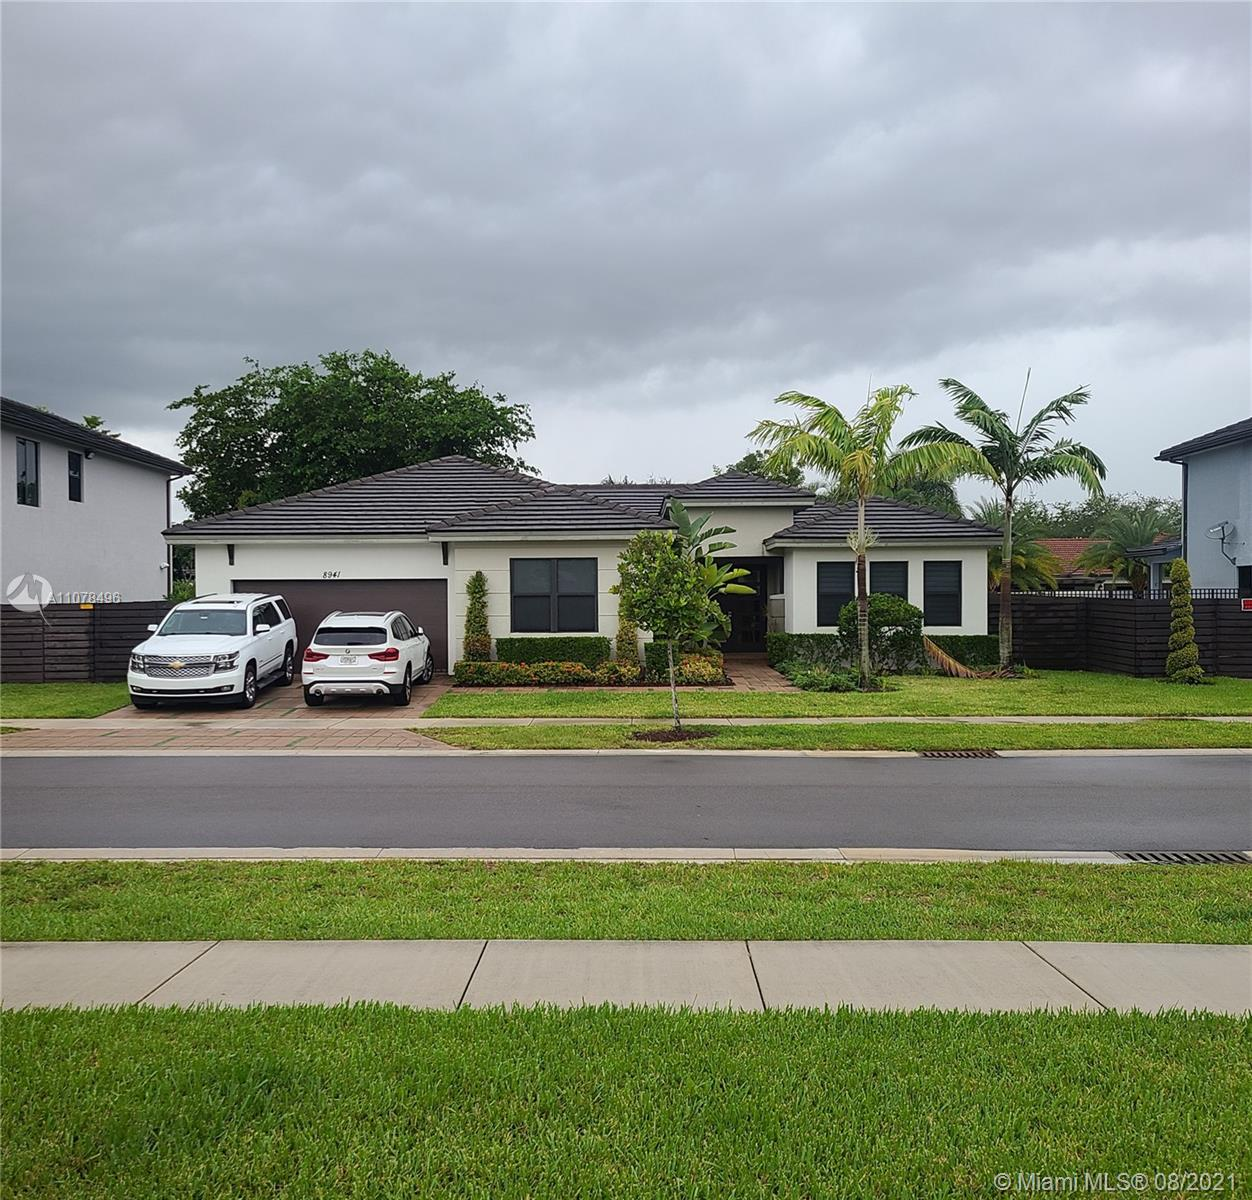 Photo of 8941 NW 161 Terr, Home